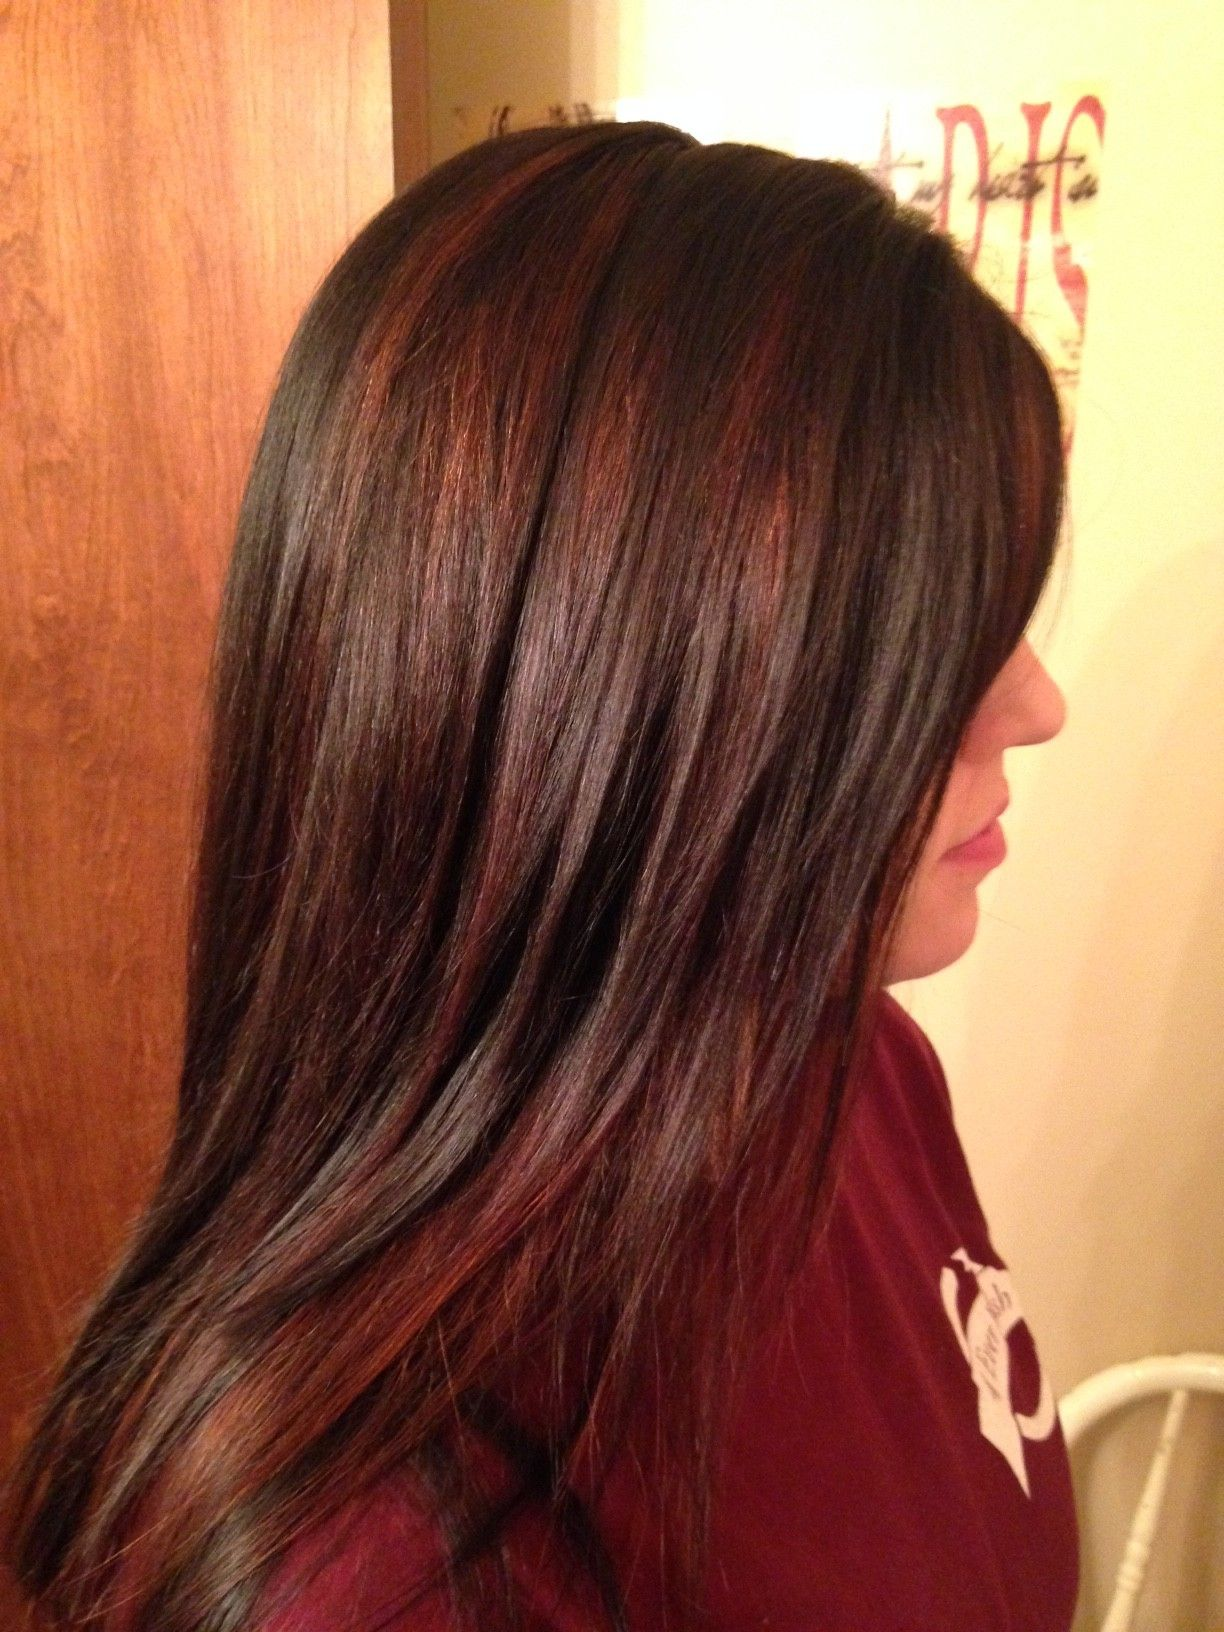 Pictures Of Light Brown Hair With Red Highlights Daily Health